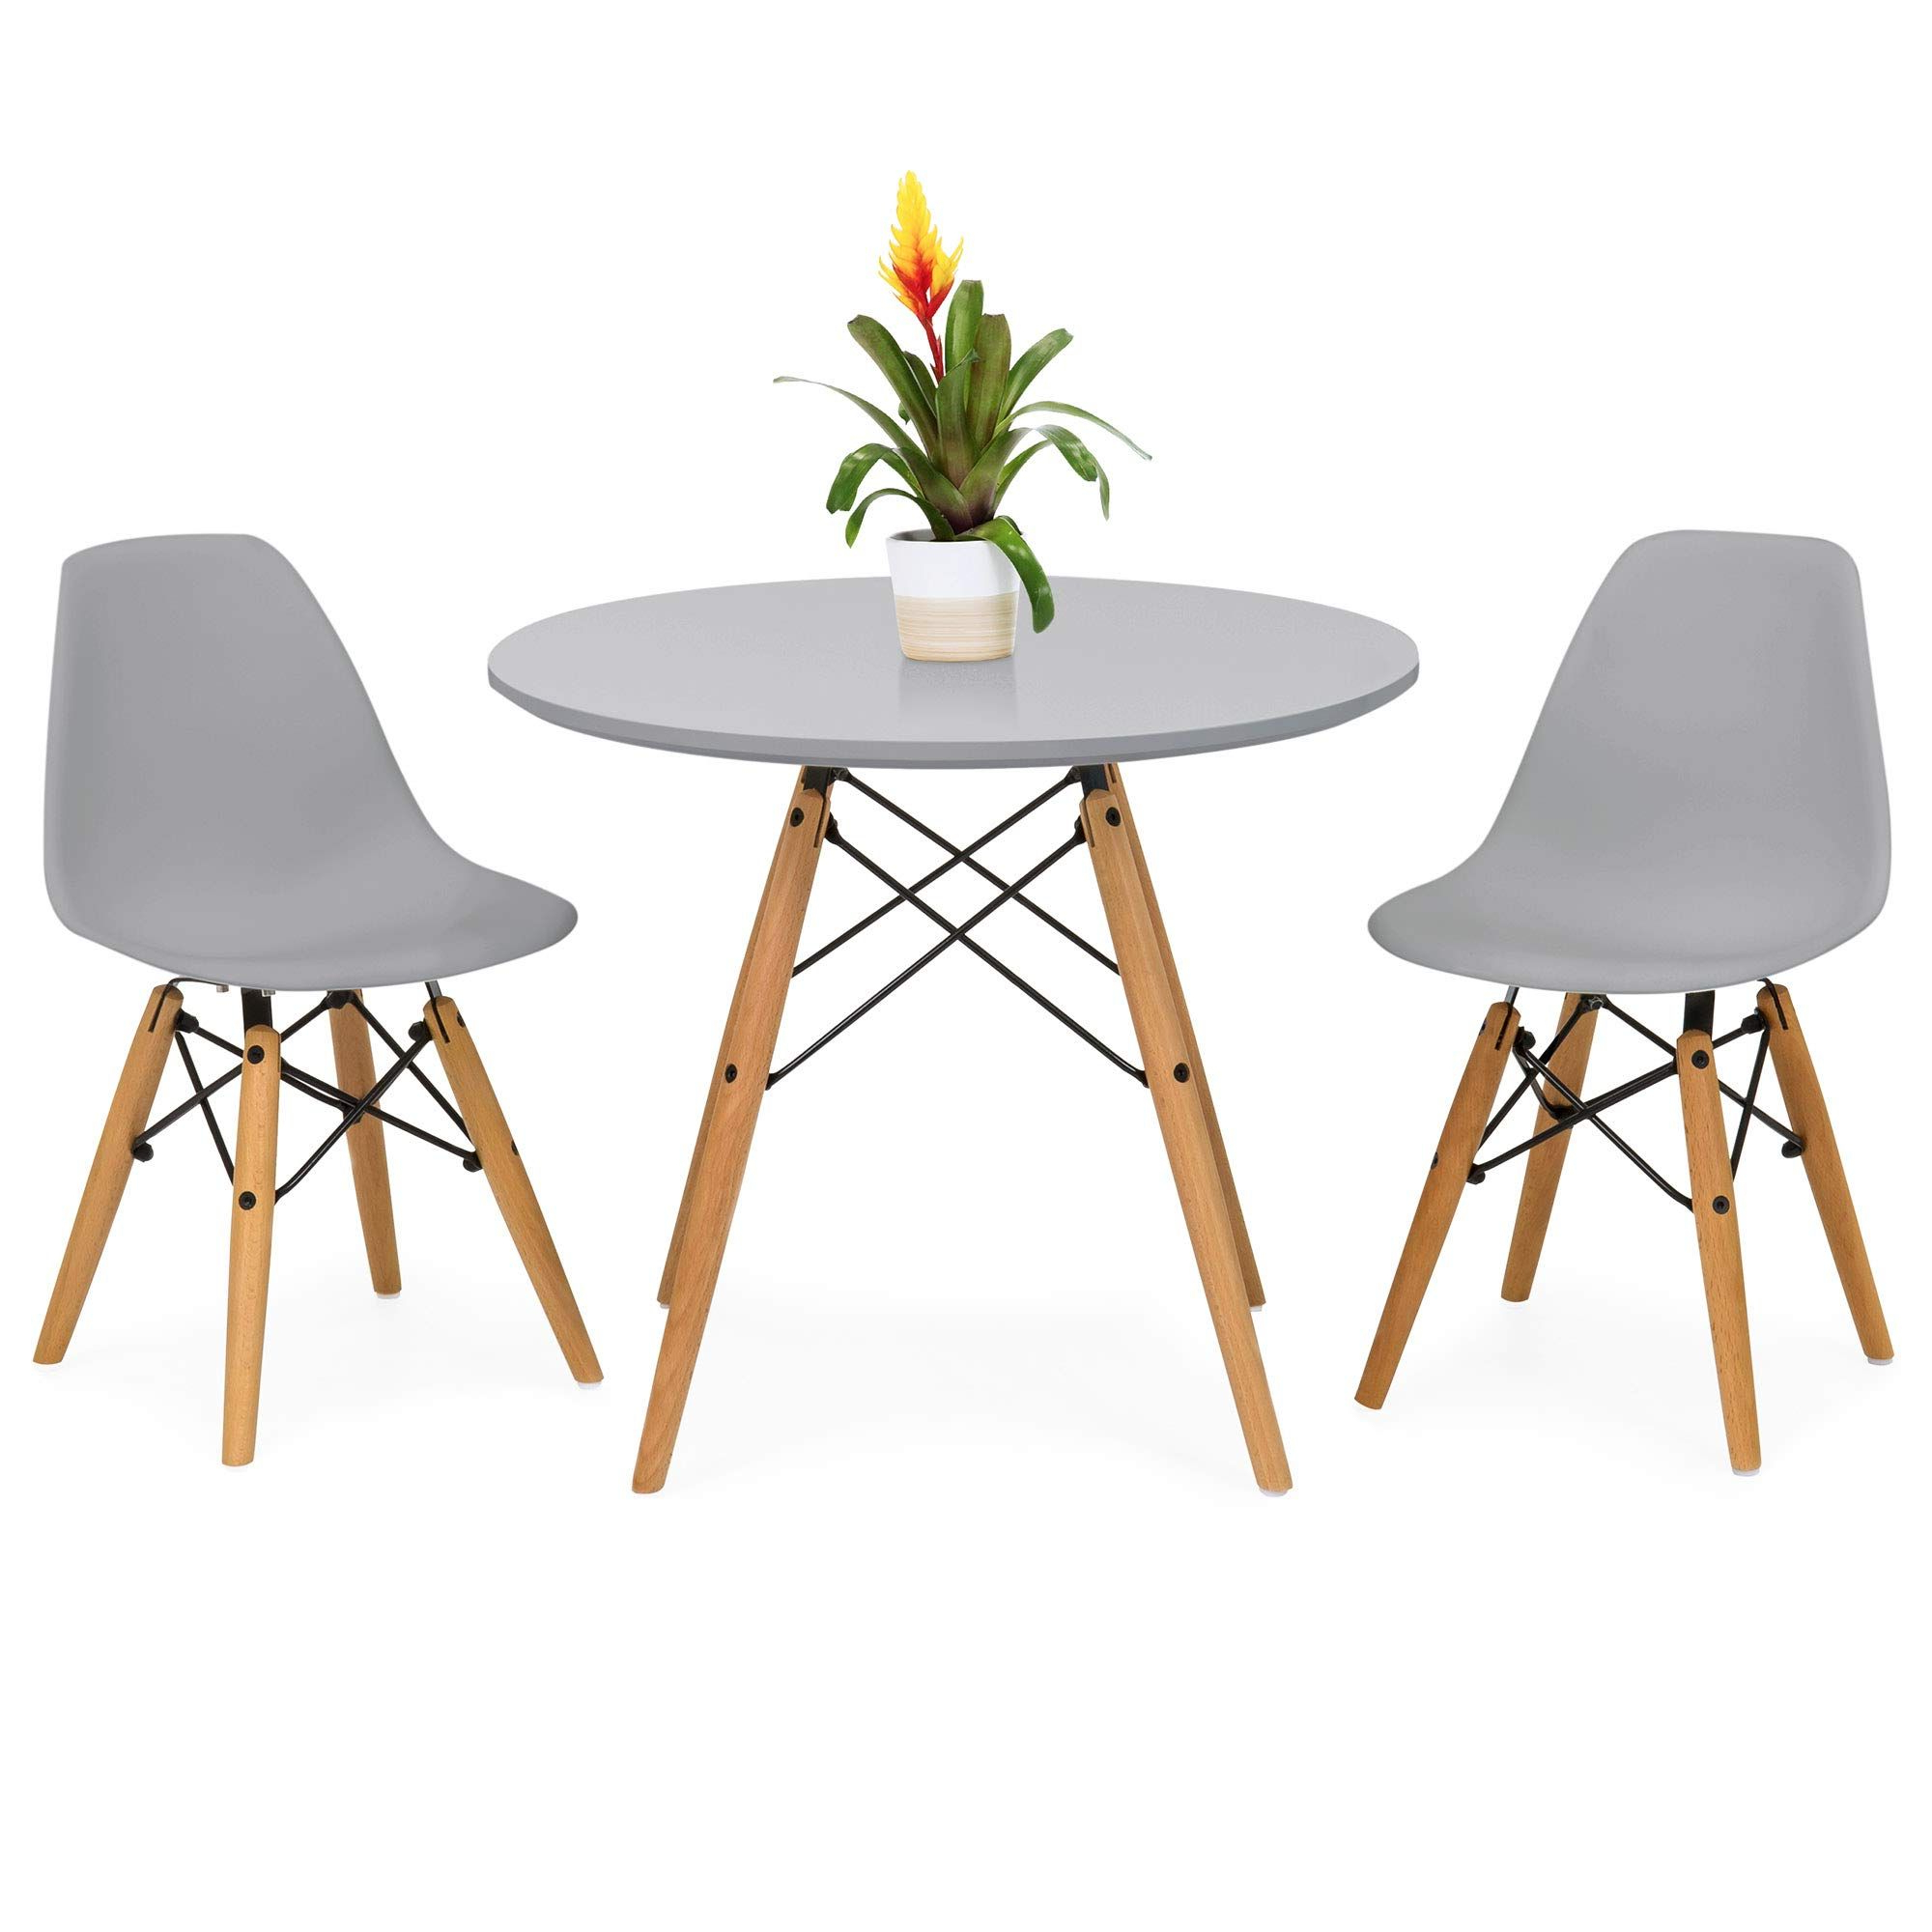 Best Choice Products Kids Mid Century Modern Eames Style Intended For Current Eames Style Dining Tables With Wooden Legs (View 2 of 30)